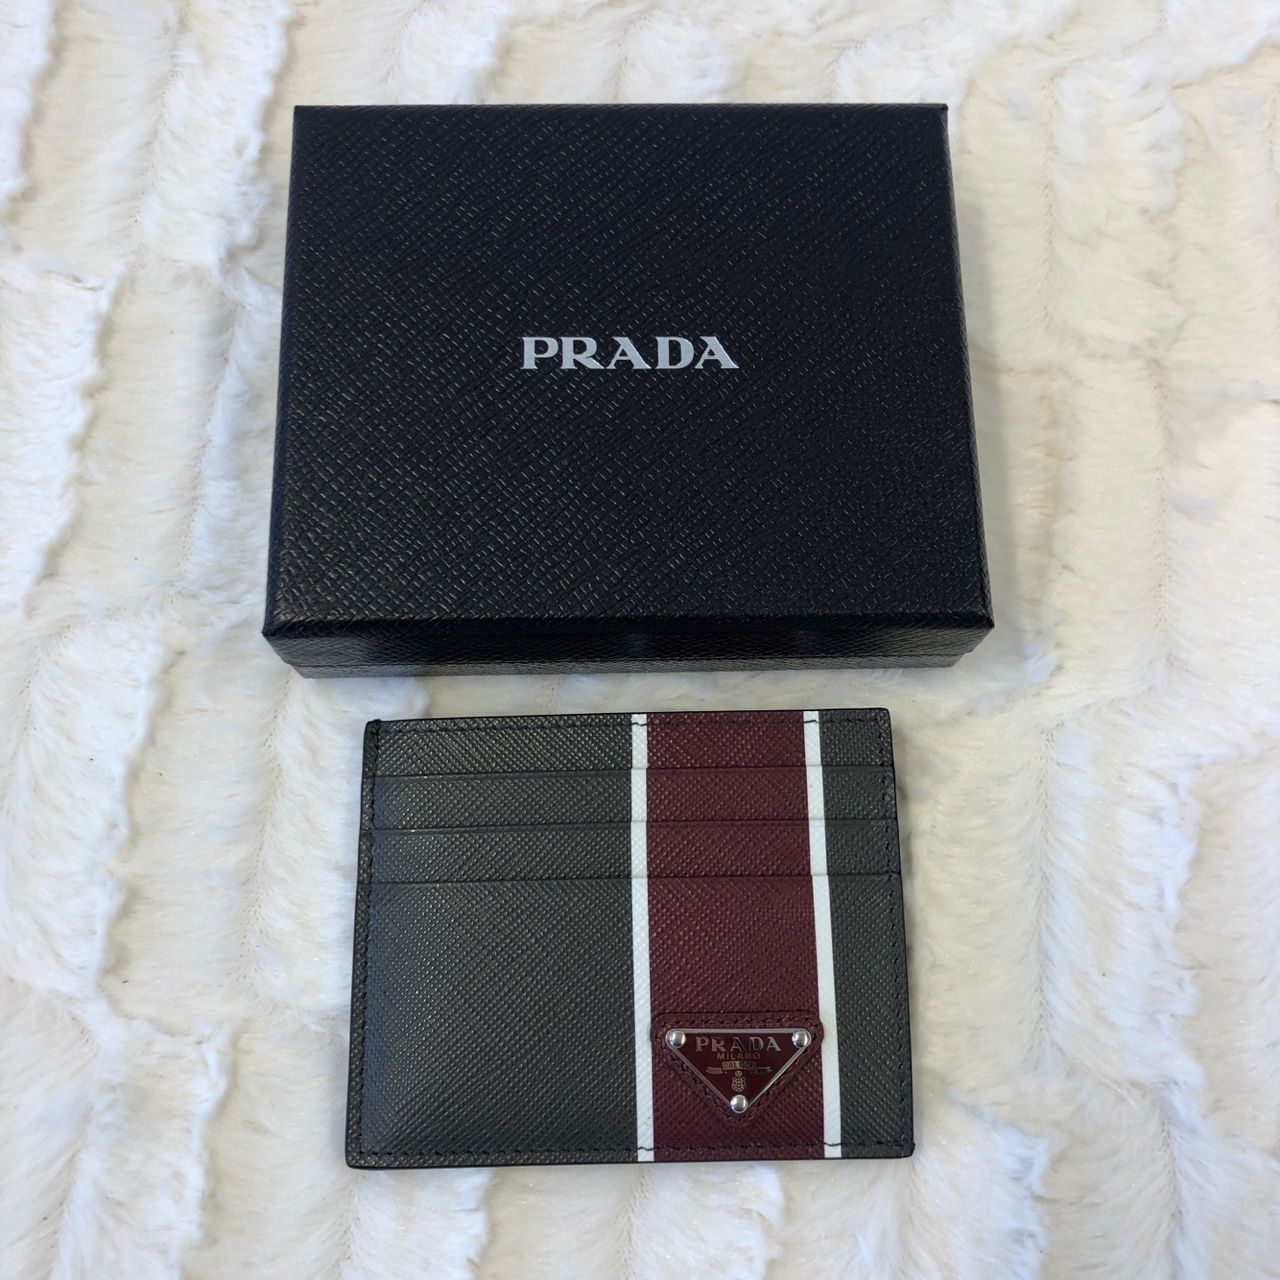 Prada Saffiano leather card holder 2MC223_2FAF_F0XC8